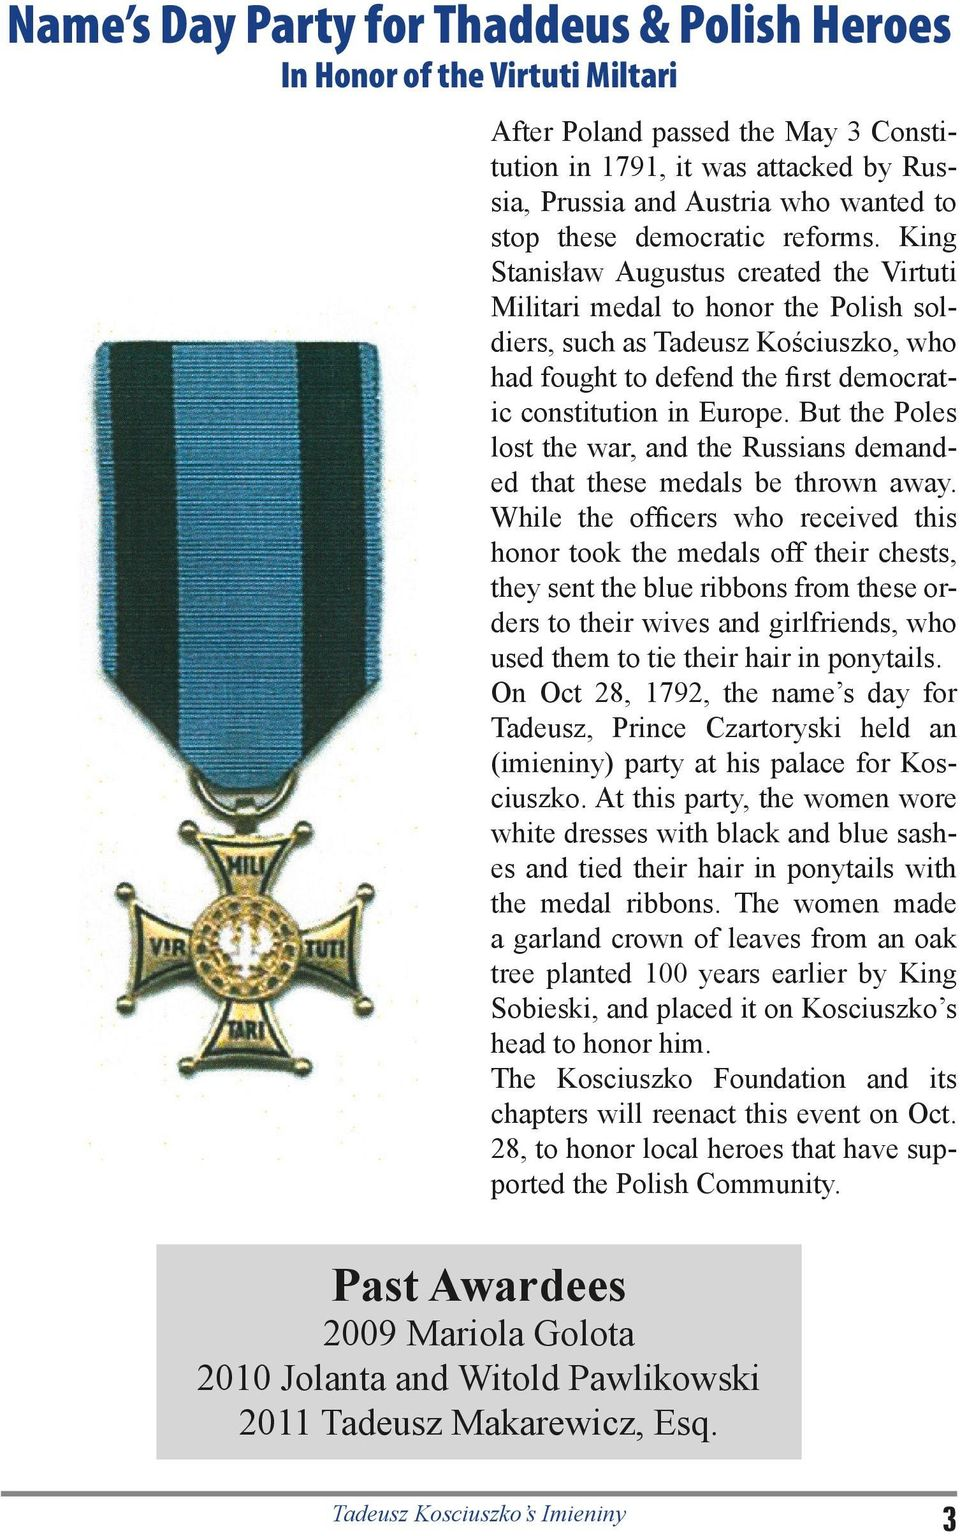 King Stanisław Augustus created the Virtuti Militari medal to honor the Polish soldiers, such as Tadeusz Kościuszko, who had fought to defend the first democratic constitution in Europe.